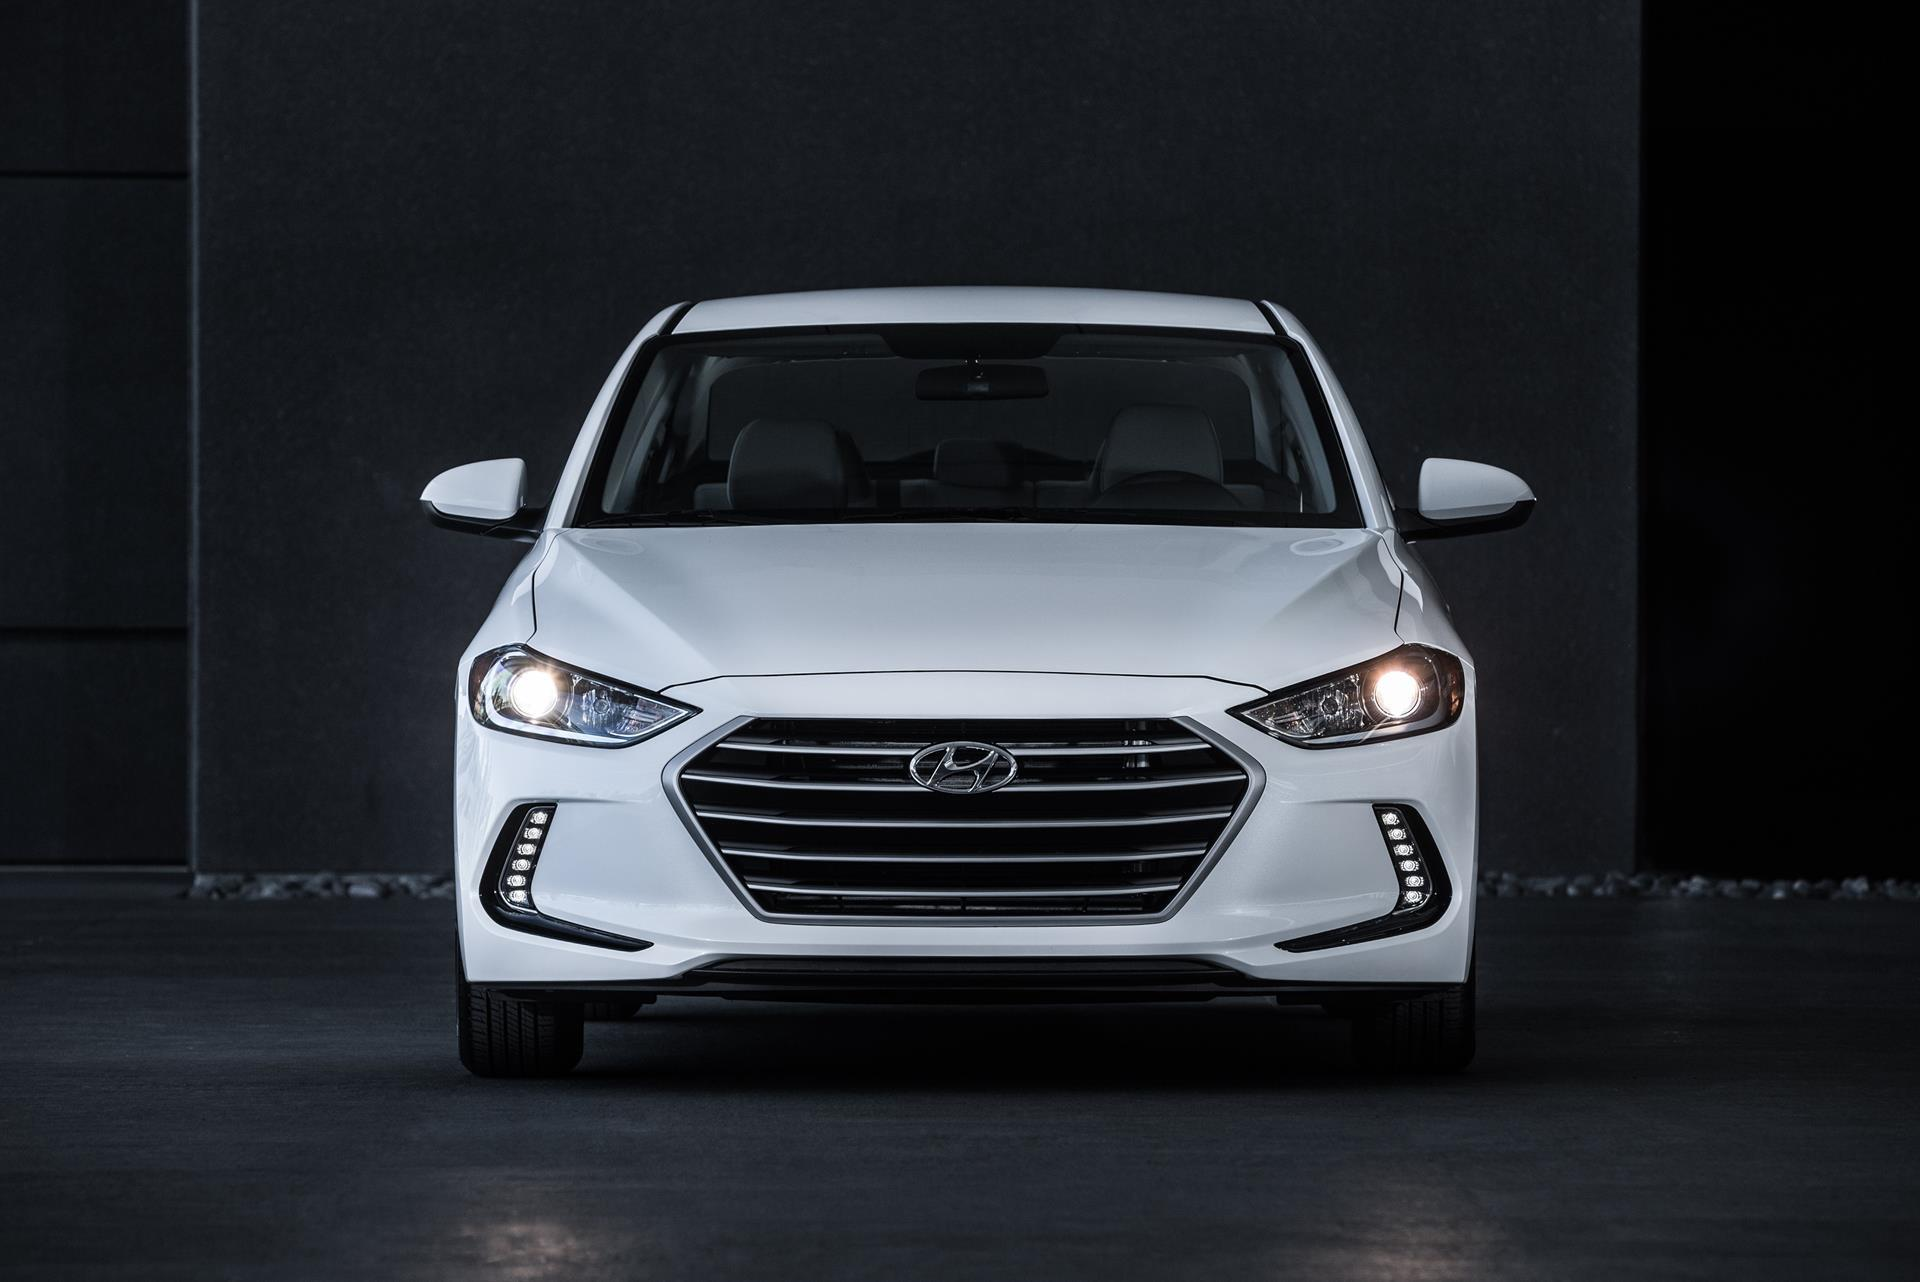 2017 hyundai elantra eco technical specifications and data engine dimensions and mechanical. Black Bedroom Furniture Sets. Home Design Ideas